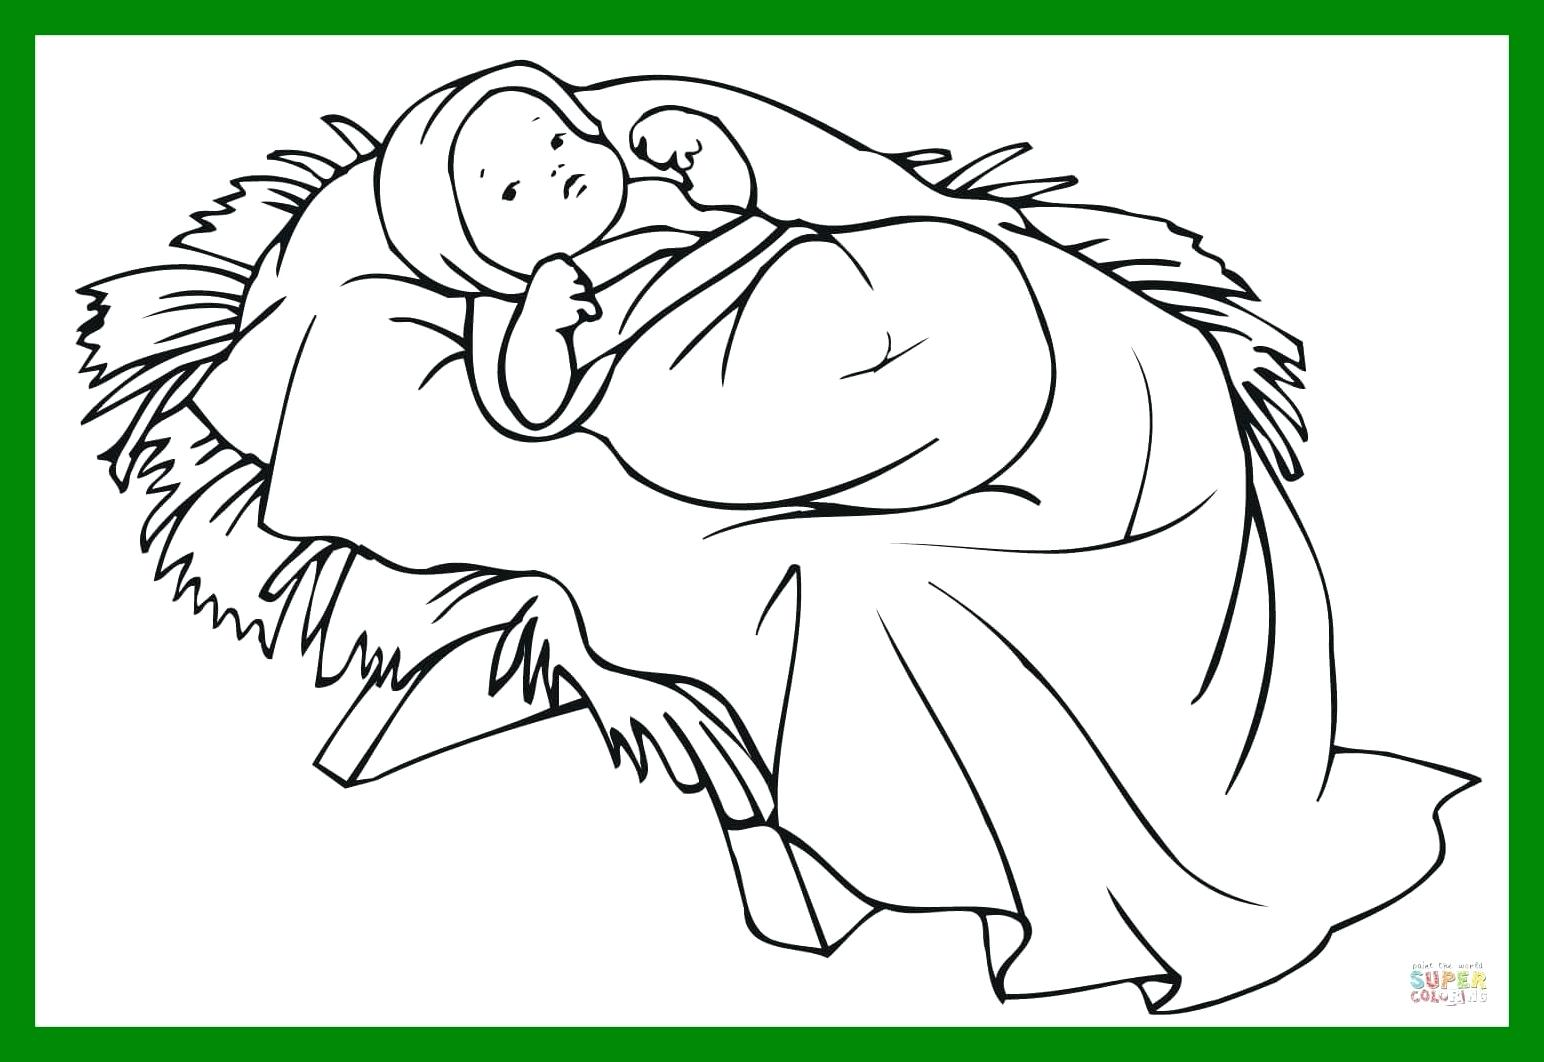 Christmas Coloring Pages Jesus Manger With Collection Of Baby In A Download Them